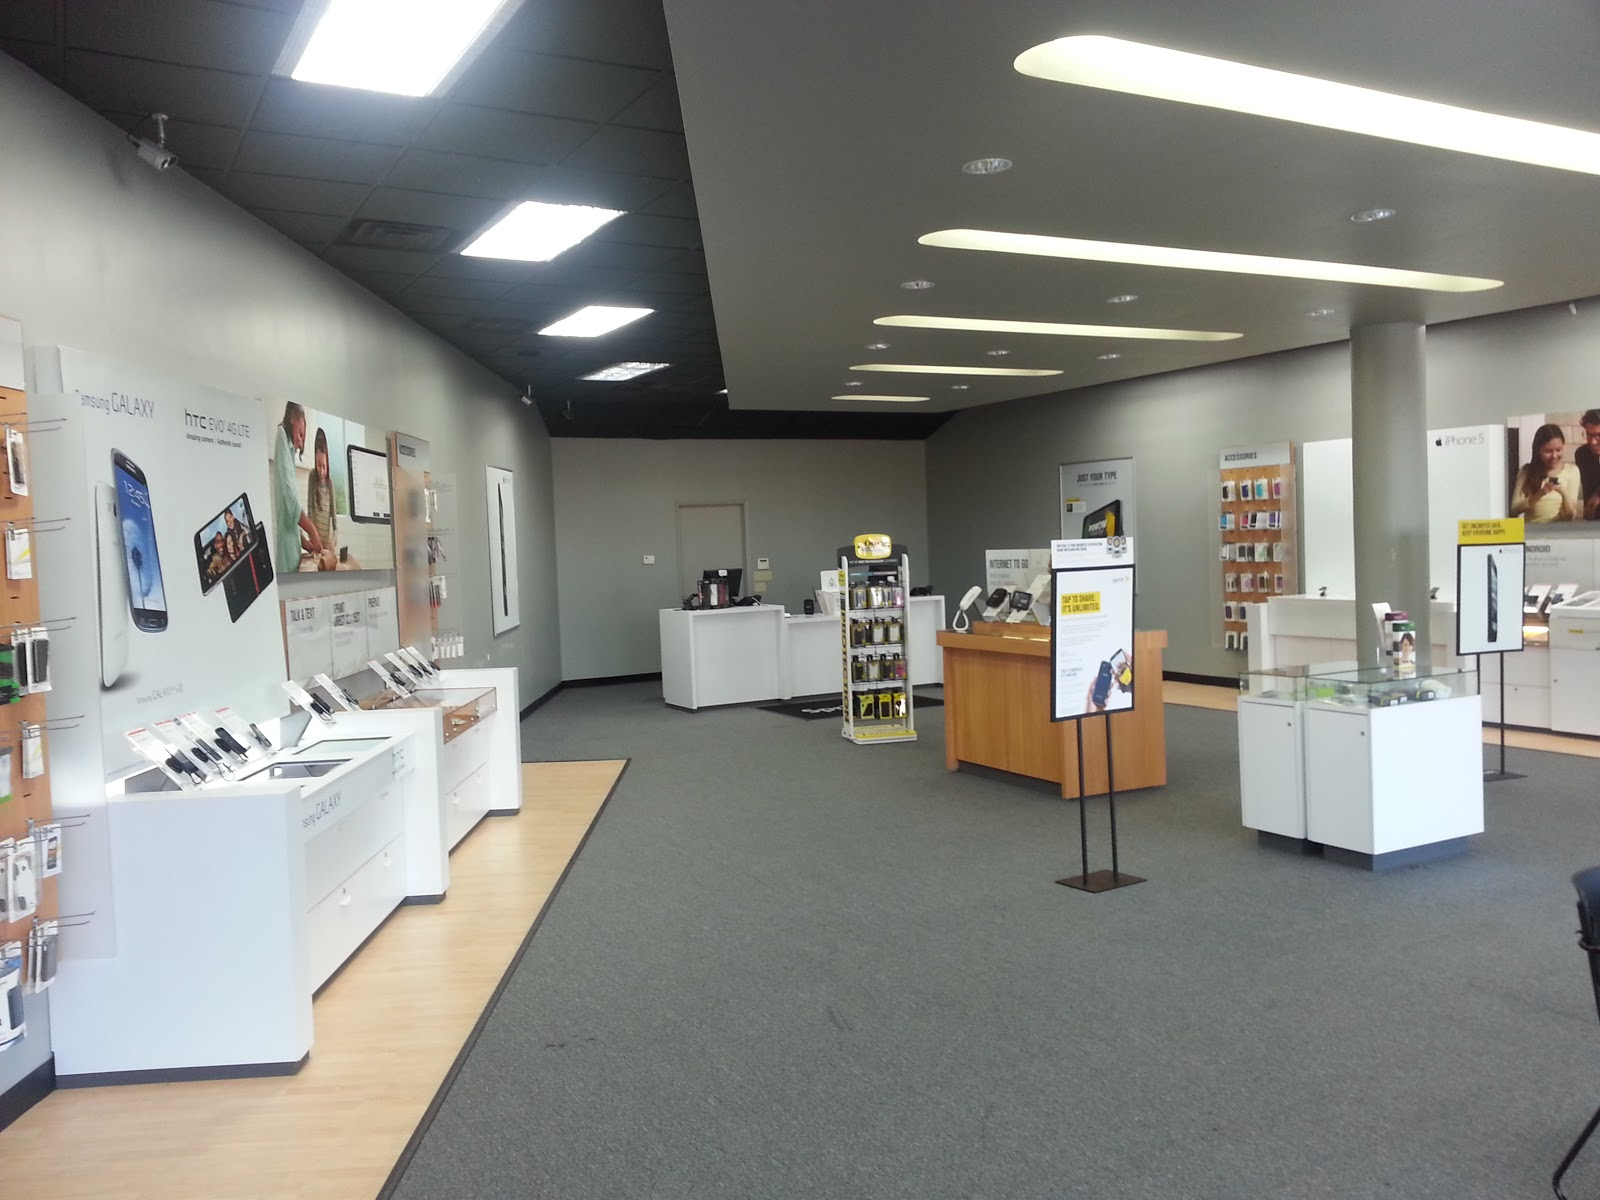 SPRINT STORE BY CONNECTIVITY SOURCE 7